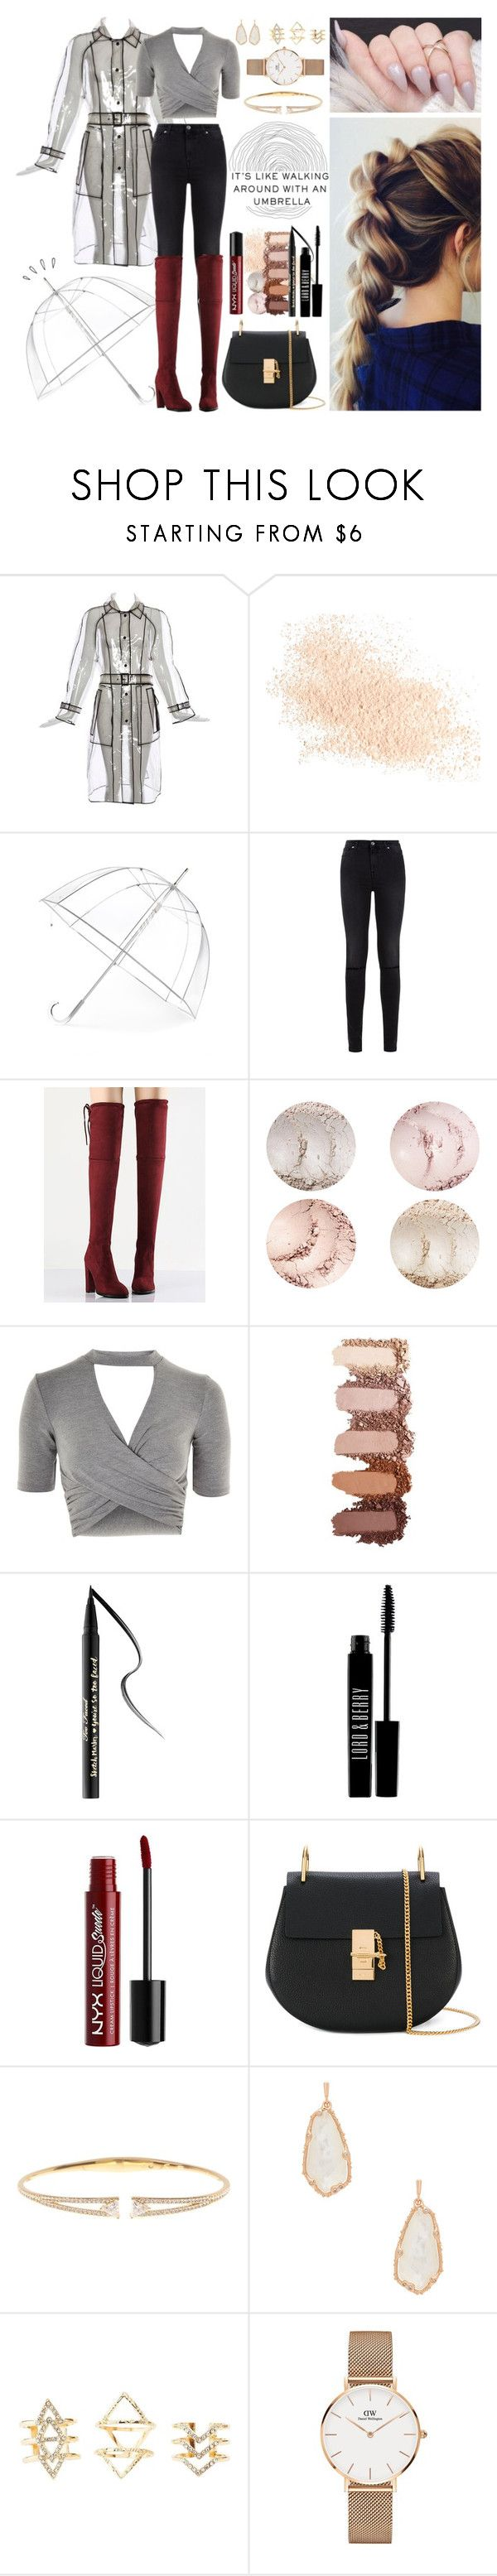 """""""Rainy Day"""" by jk802 ❤ liked on Polyvore featuring Eve Lom, Totes, 7 For All Mankind, WithChic, Topshop, Too Faced Cosmetics, Lord & Berry, Charlotte Russe, Chloé and Nadri"""